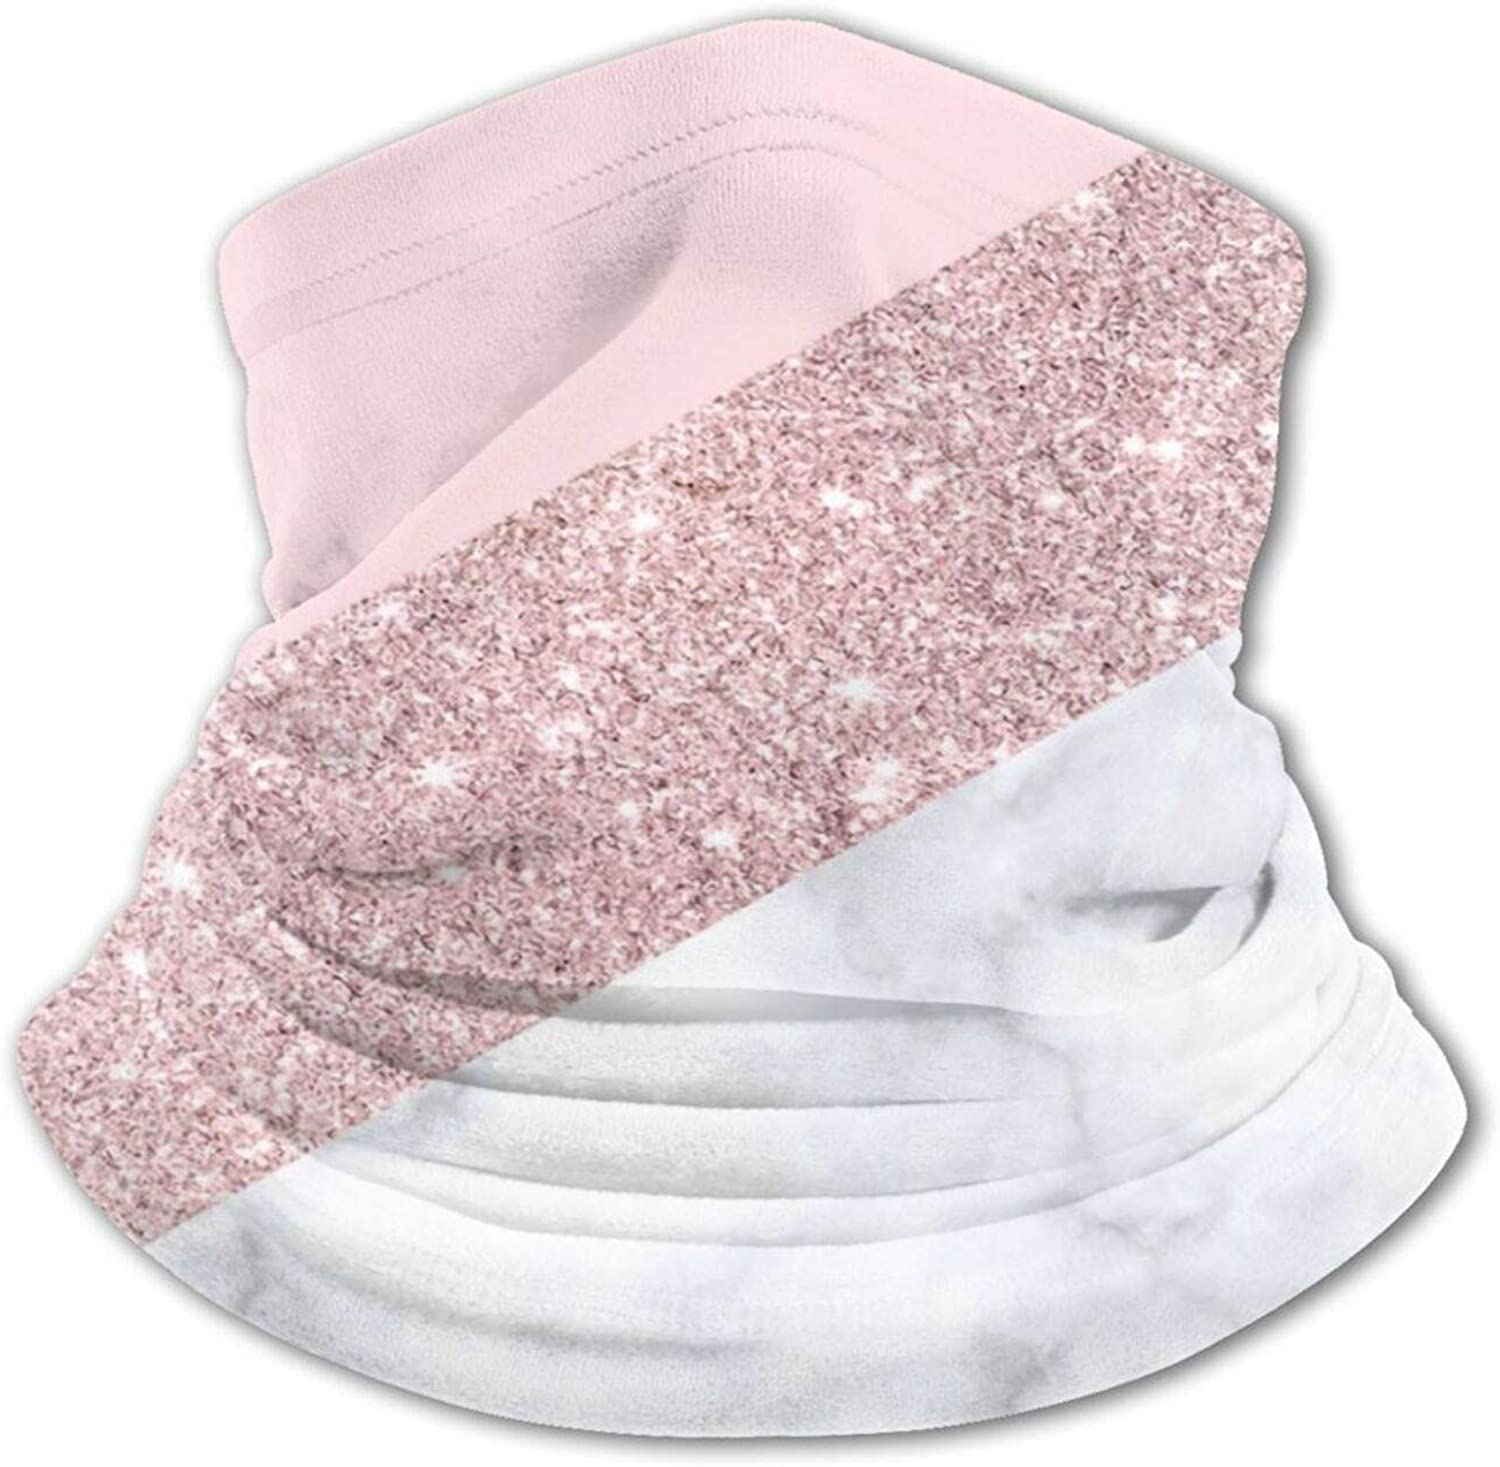 Elegant girly rose gold glitter white Face marble pink New sales Kids Cove Year-end gift